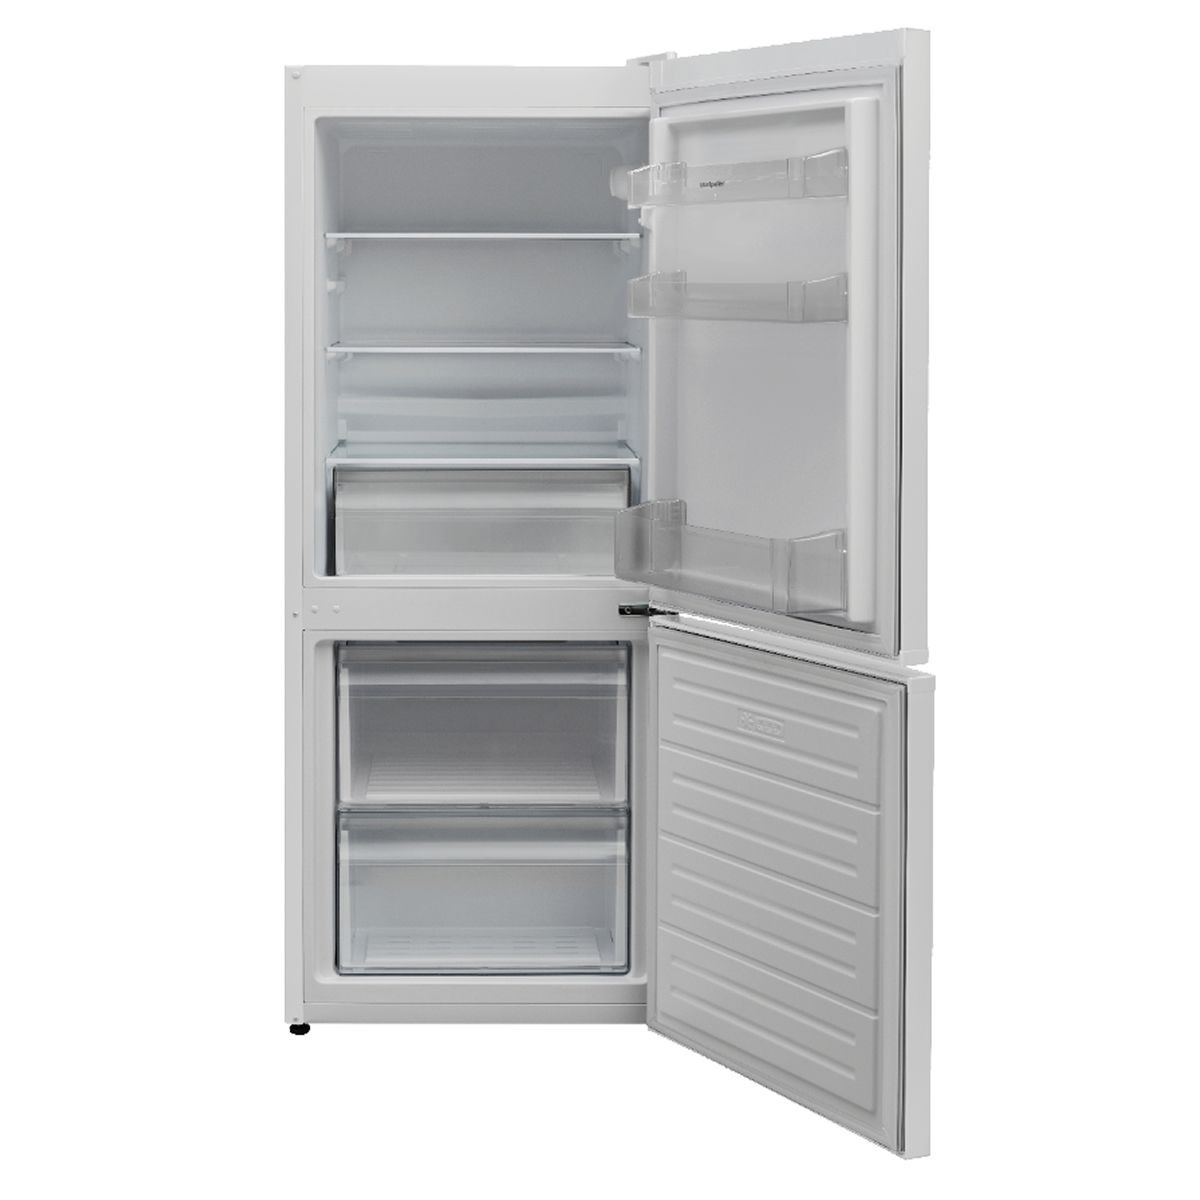 Montpellier MS137W Fridge Freezer